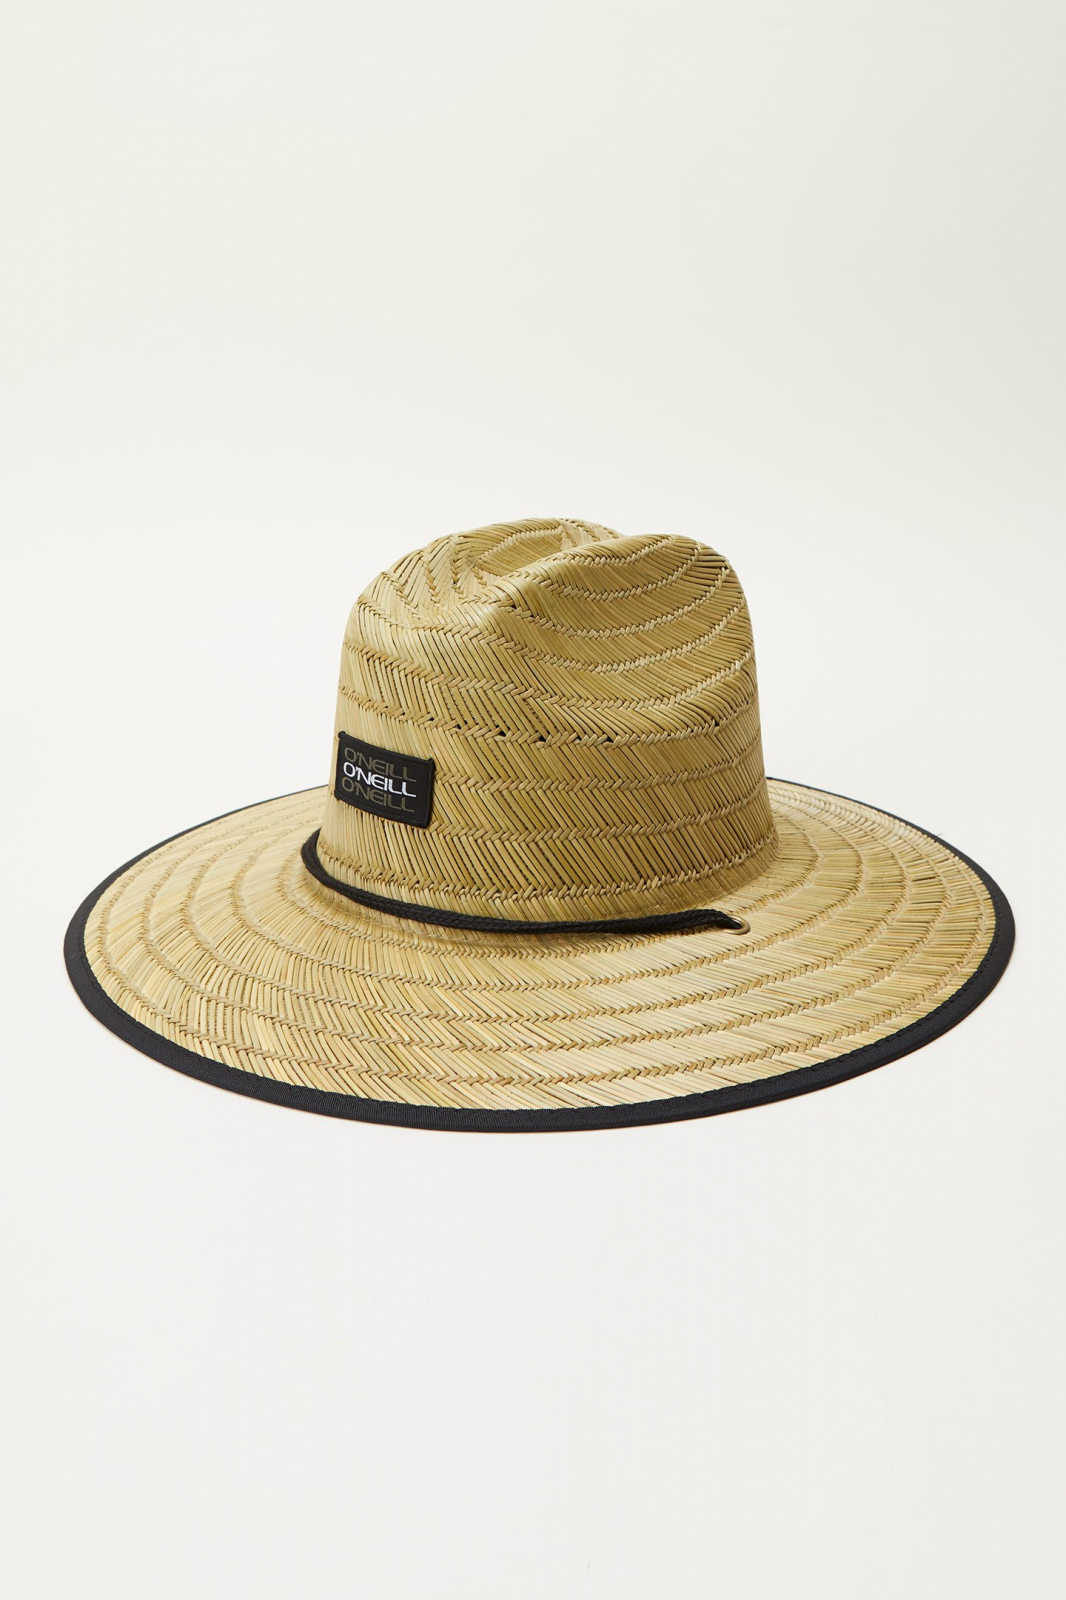 ONEILL SONOMA PRINTS OLIVE